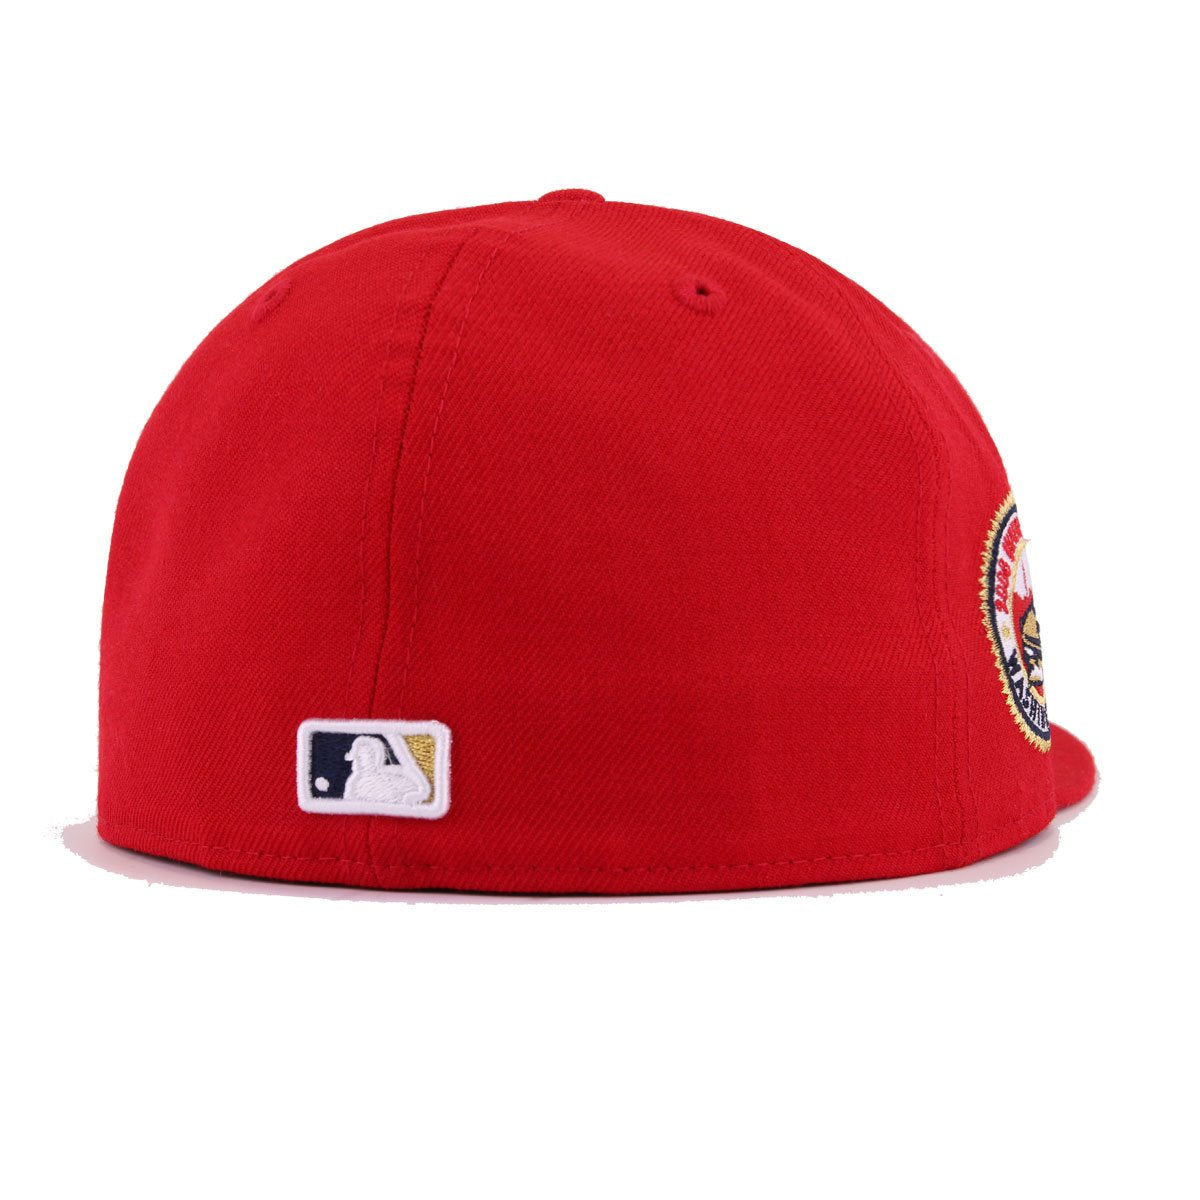 Washington Nationals Scarlet 2008 Inaugural Season New Era 59Fifty Fitted